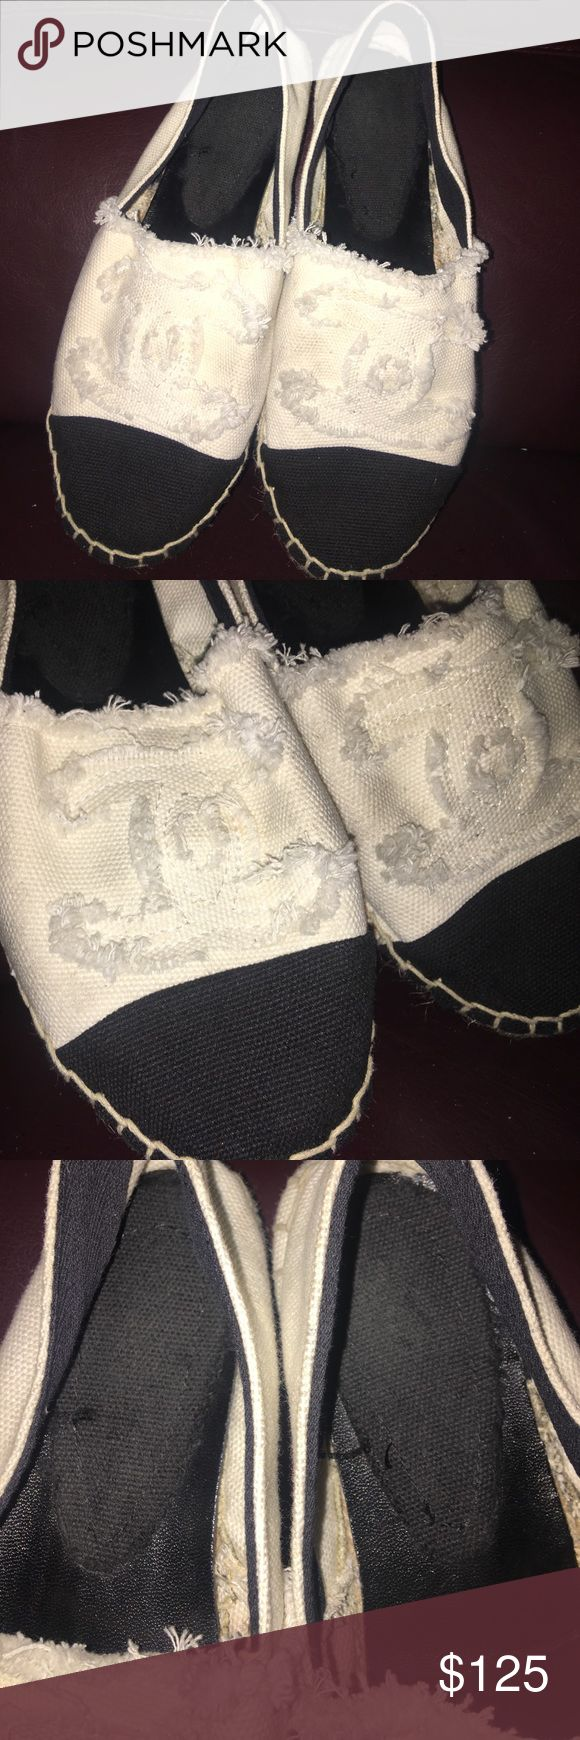 Chanel espadrilles Size 36. Fits true to size. Gently used. Comes with stuffing to maintain shape. Selling cause I am moving and need the space.  *Authenticity reflected in price.* Shoes